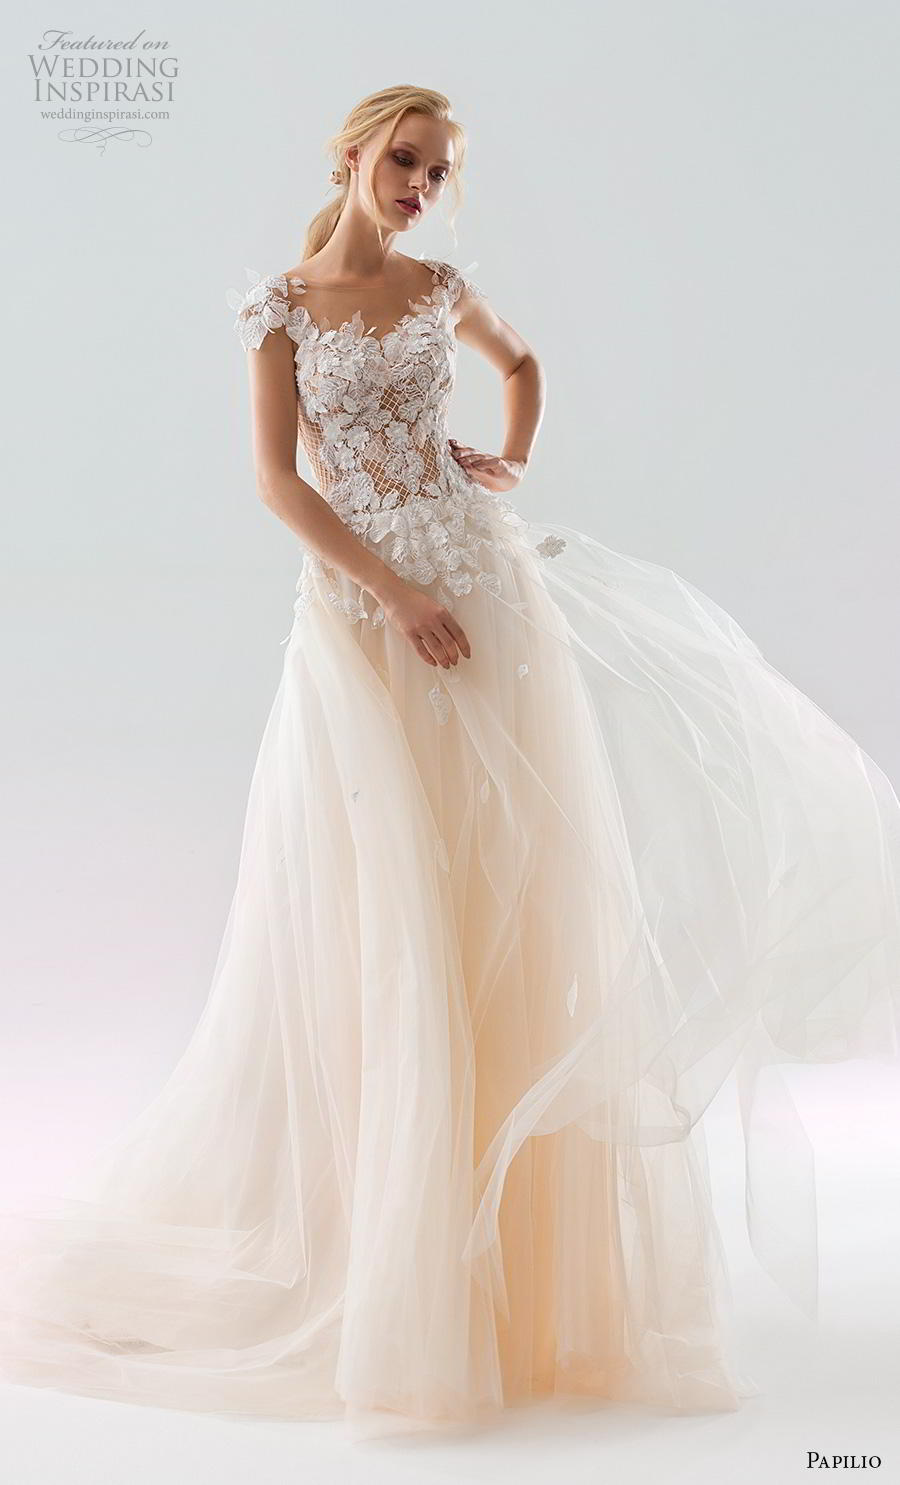 papilio 2019 bridal cap sleeves illusion bateau scoop neckline heavily embellished bodice peach colored soft a  line wedding dress backless v back chapel train (2) mv